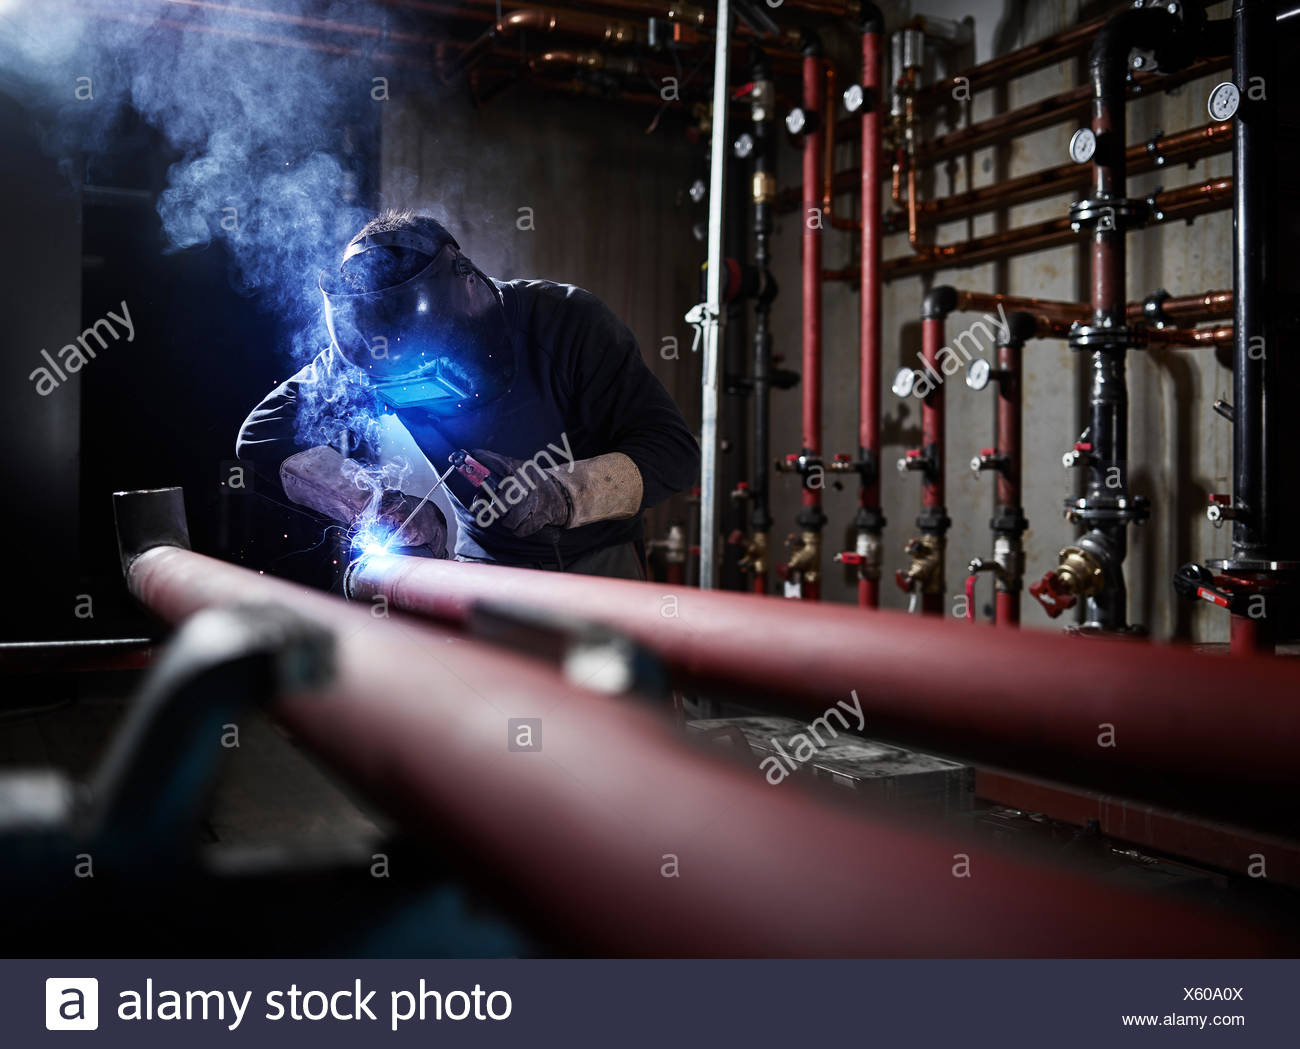 Plant fitter welding mask welding pipes, Austria - Stock Image